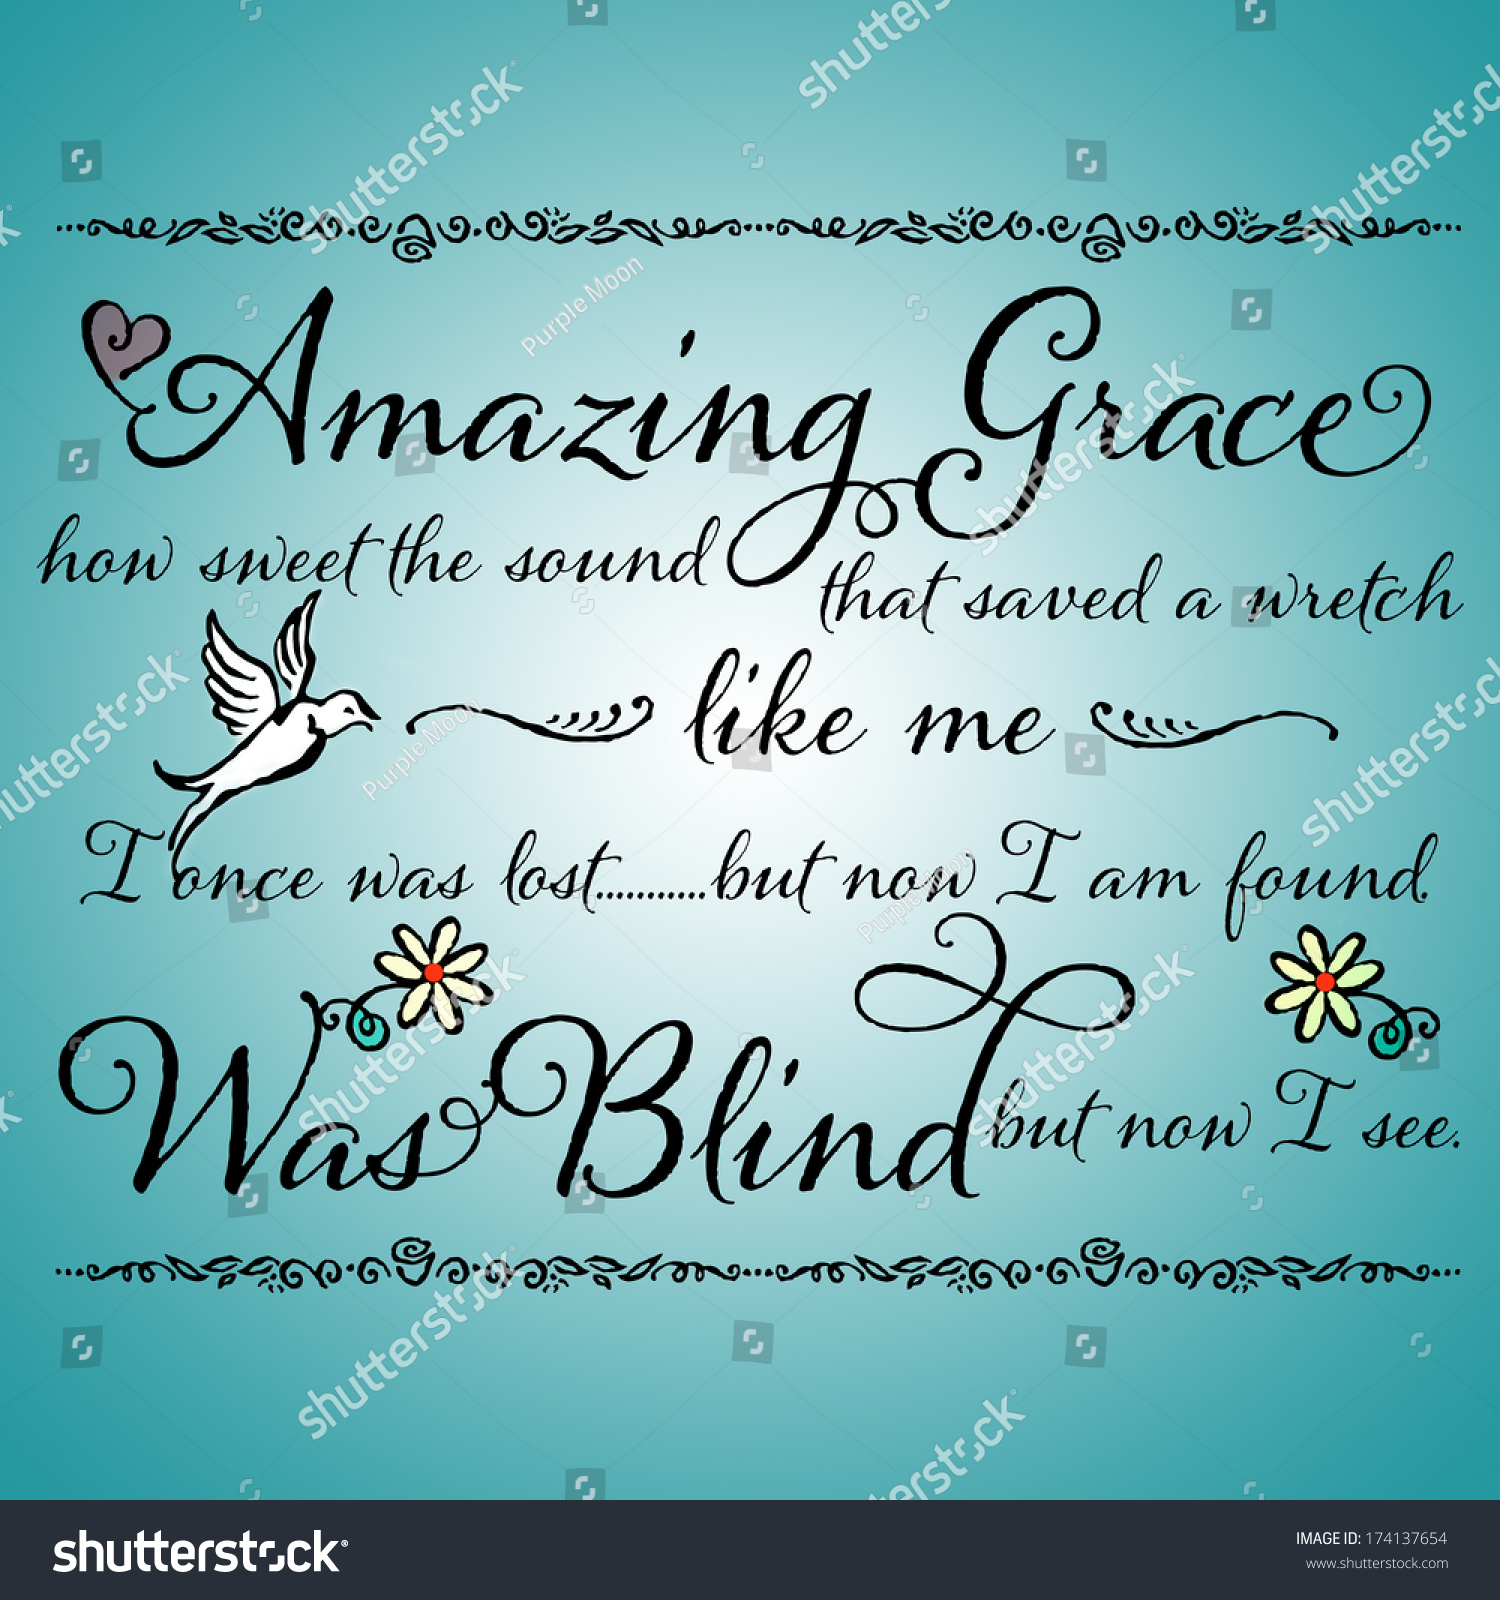 Amazing Grace: Amazing Grace Word Art Teal Illustration Stock